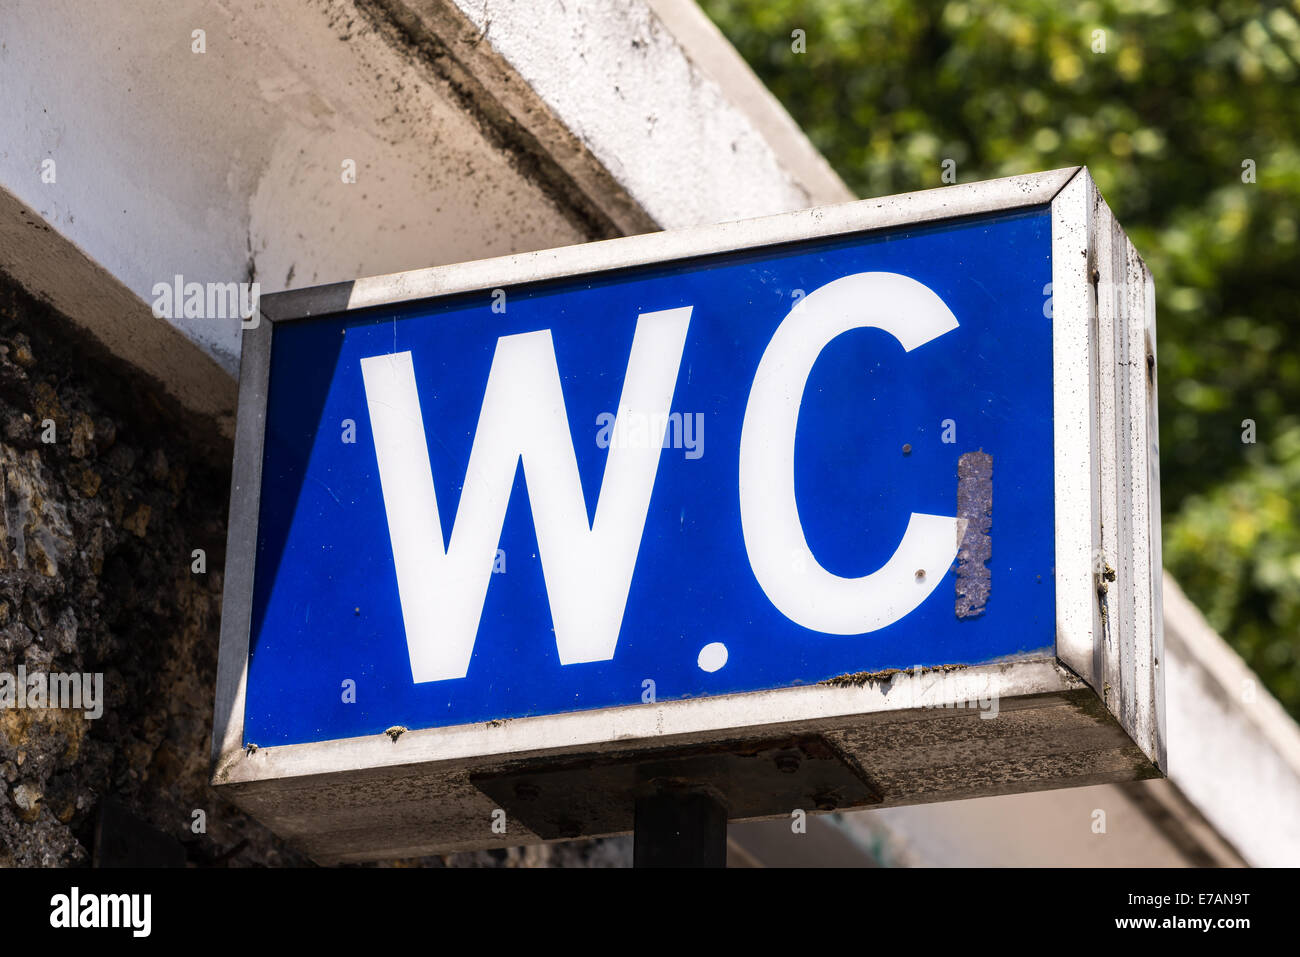 A blue W.C. sign shows the entrance to a water closet. - Stock Image